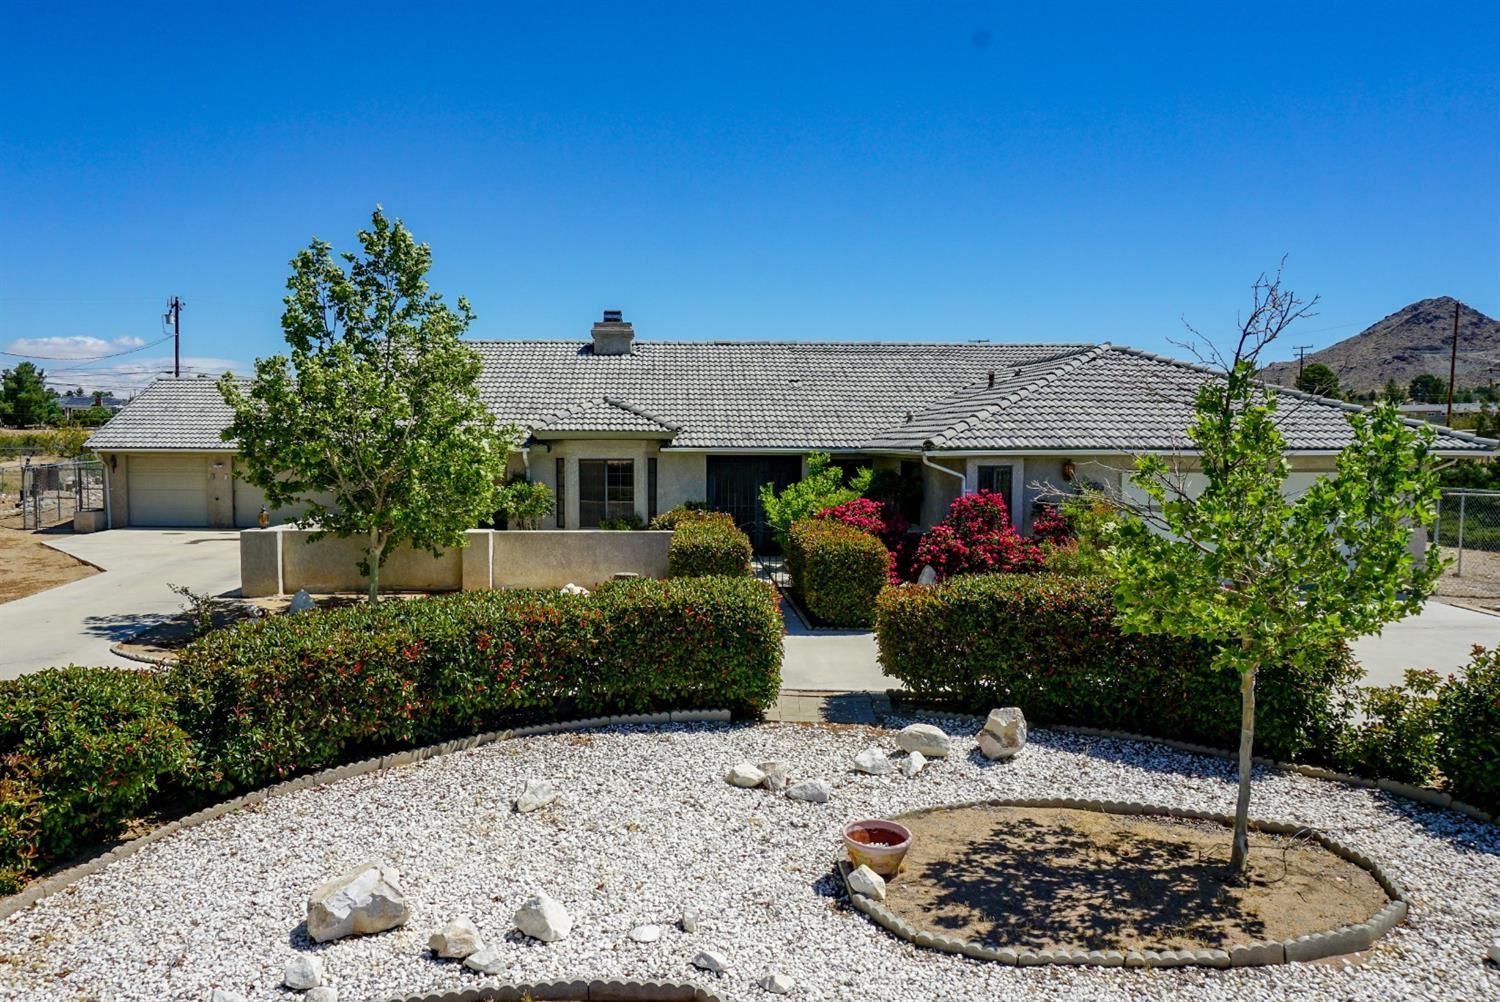 16038 Venango Road, Apple Valley, CA 92307 - MLS#: 524674